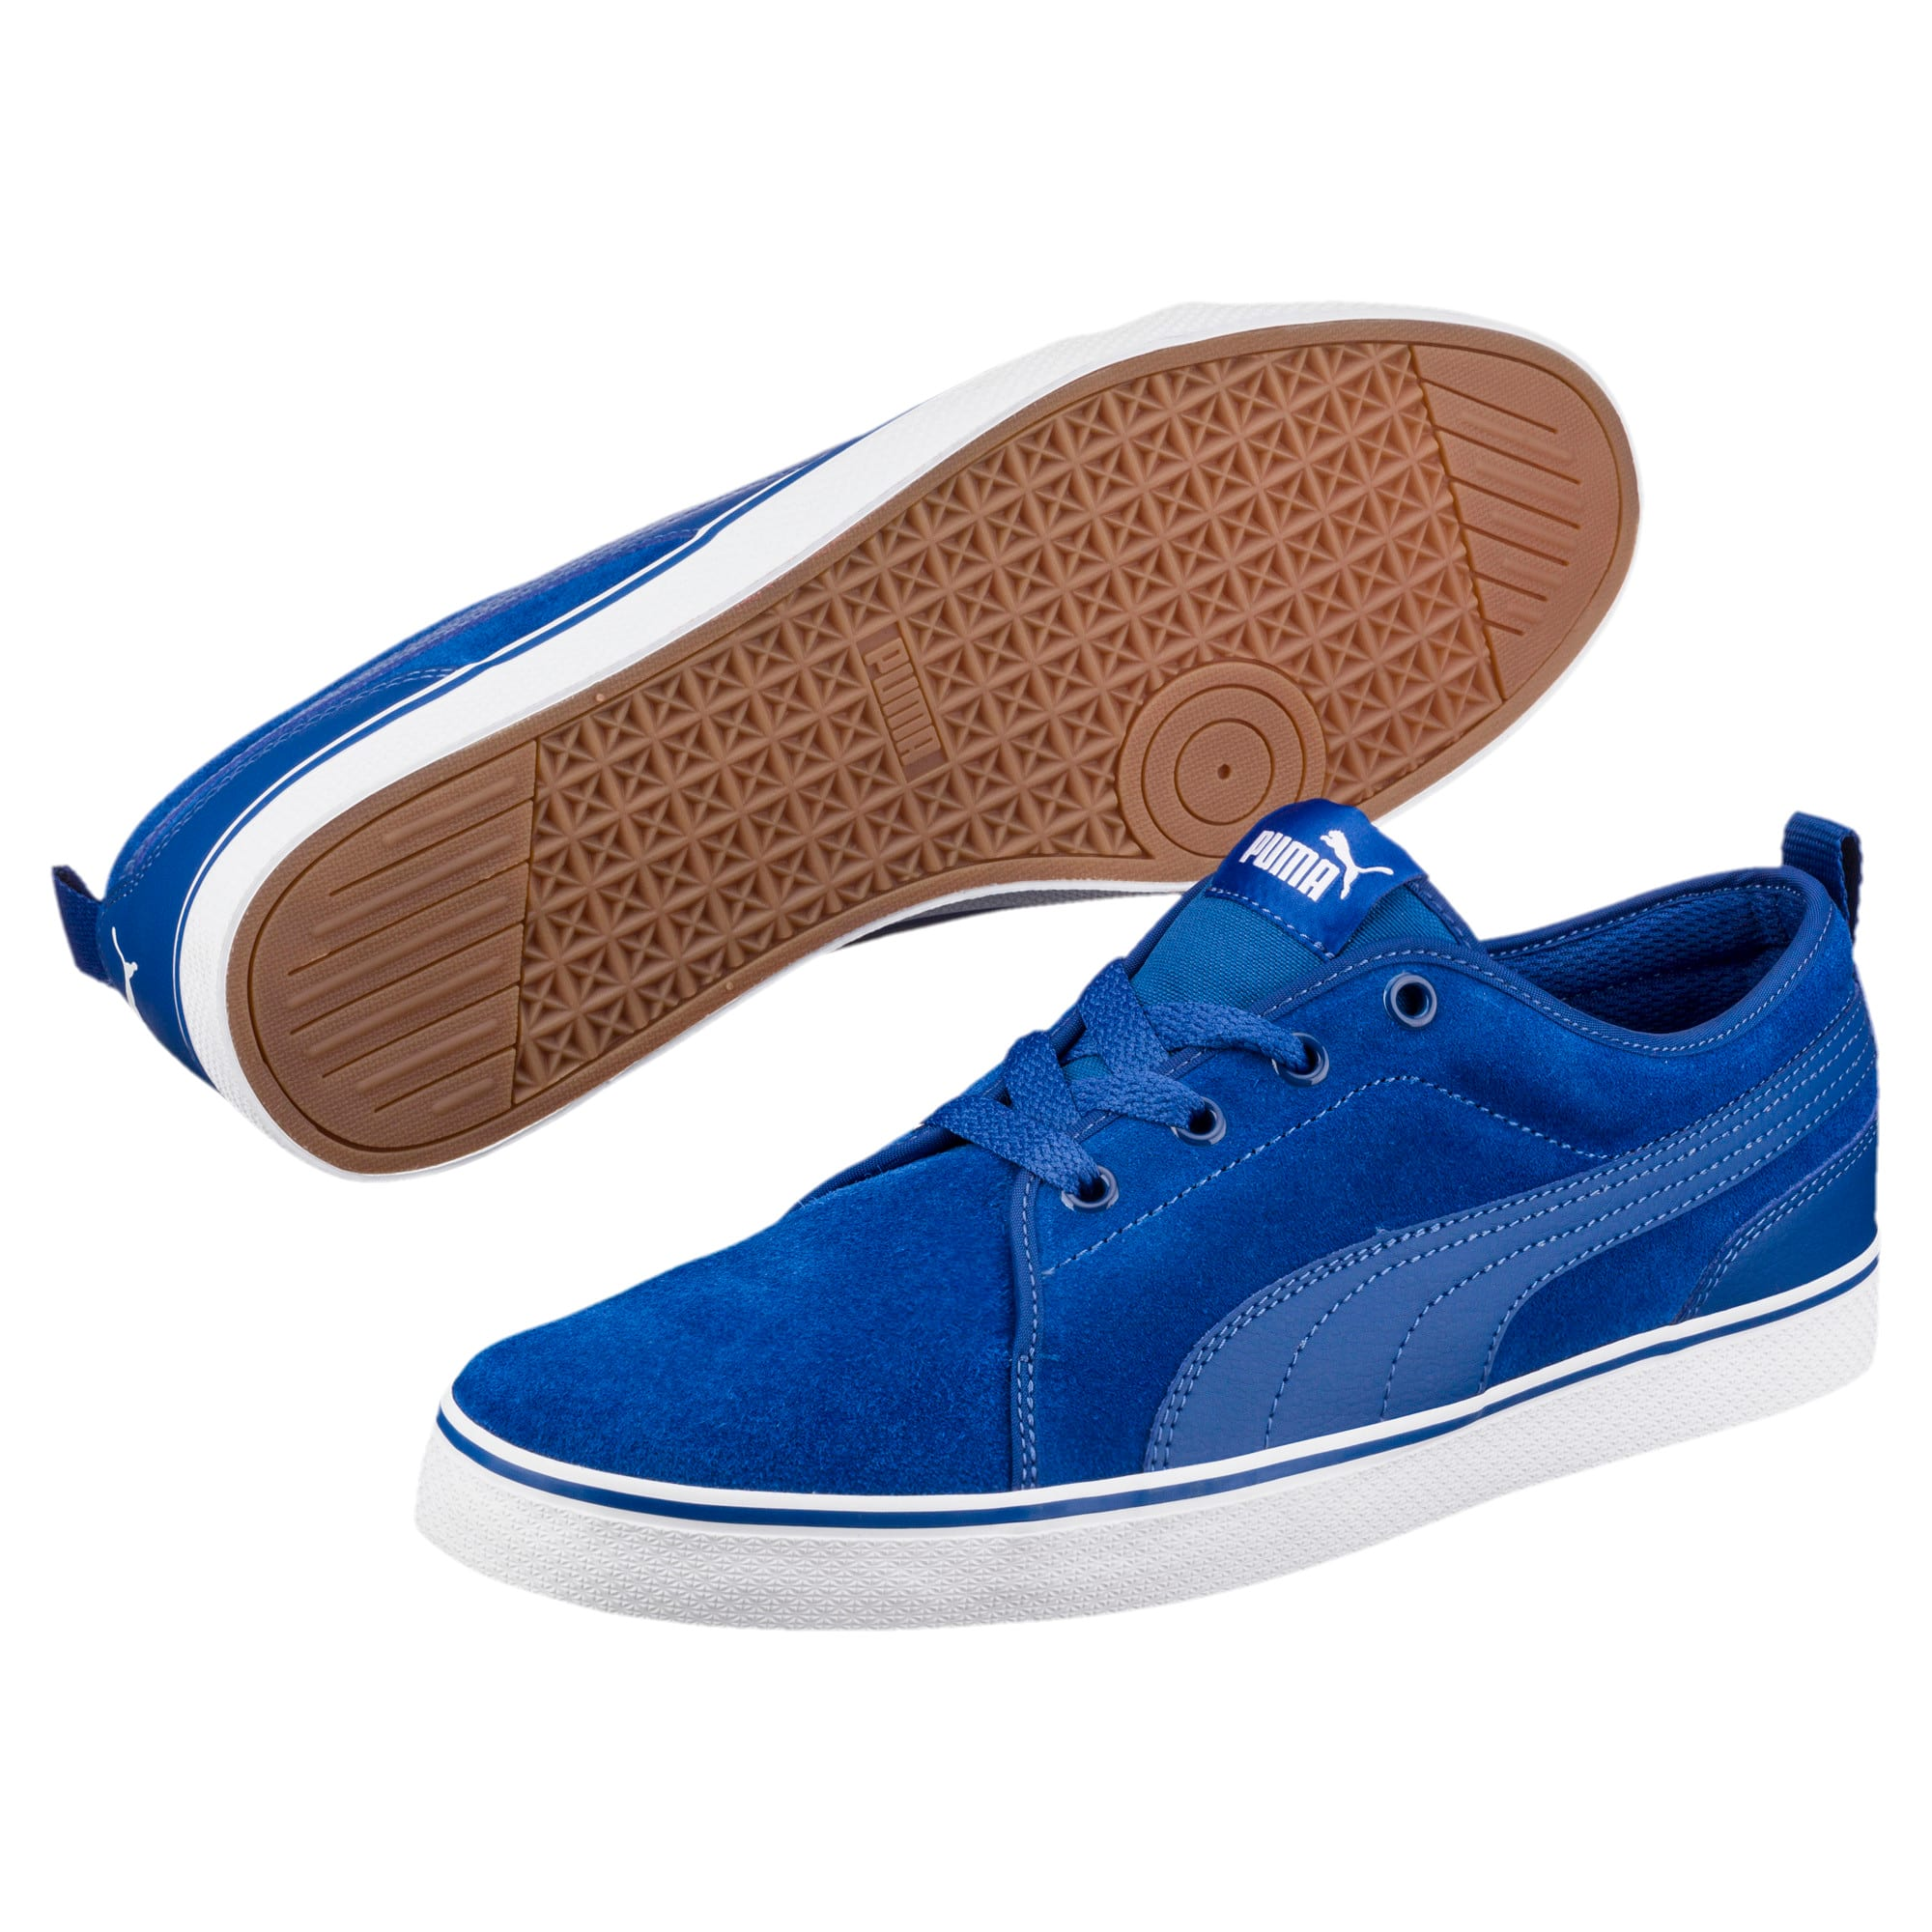 Thumbnail 2 of S Street Vulc, TRUE BLUE-TRUE BLUE, medium-IND